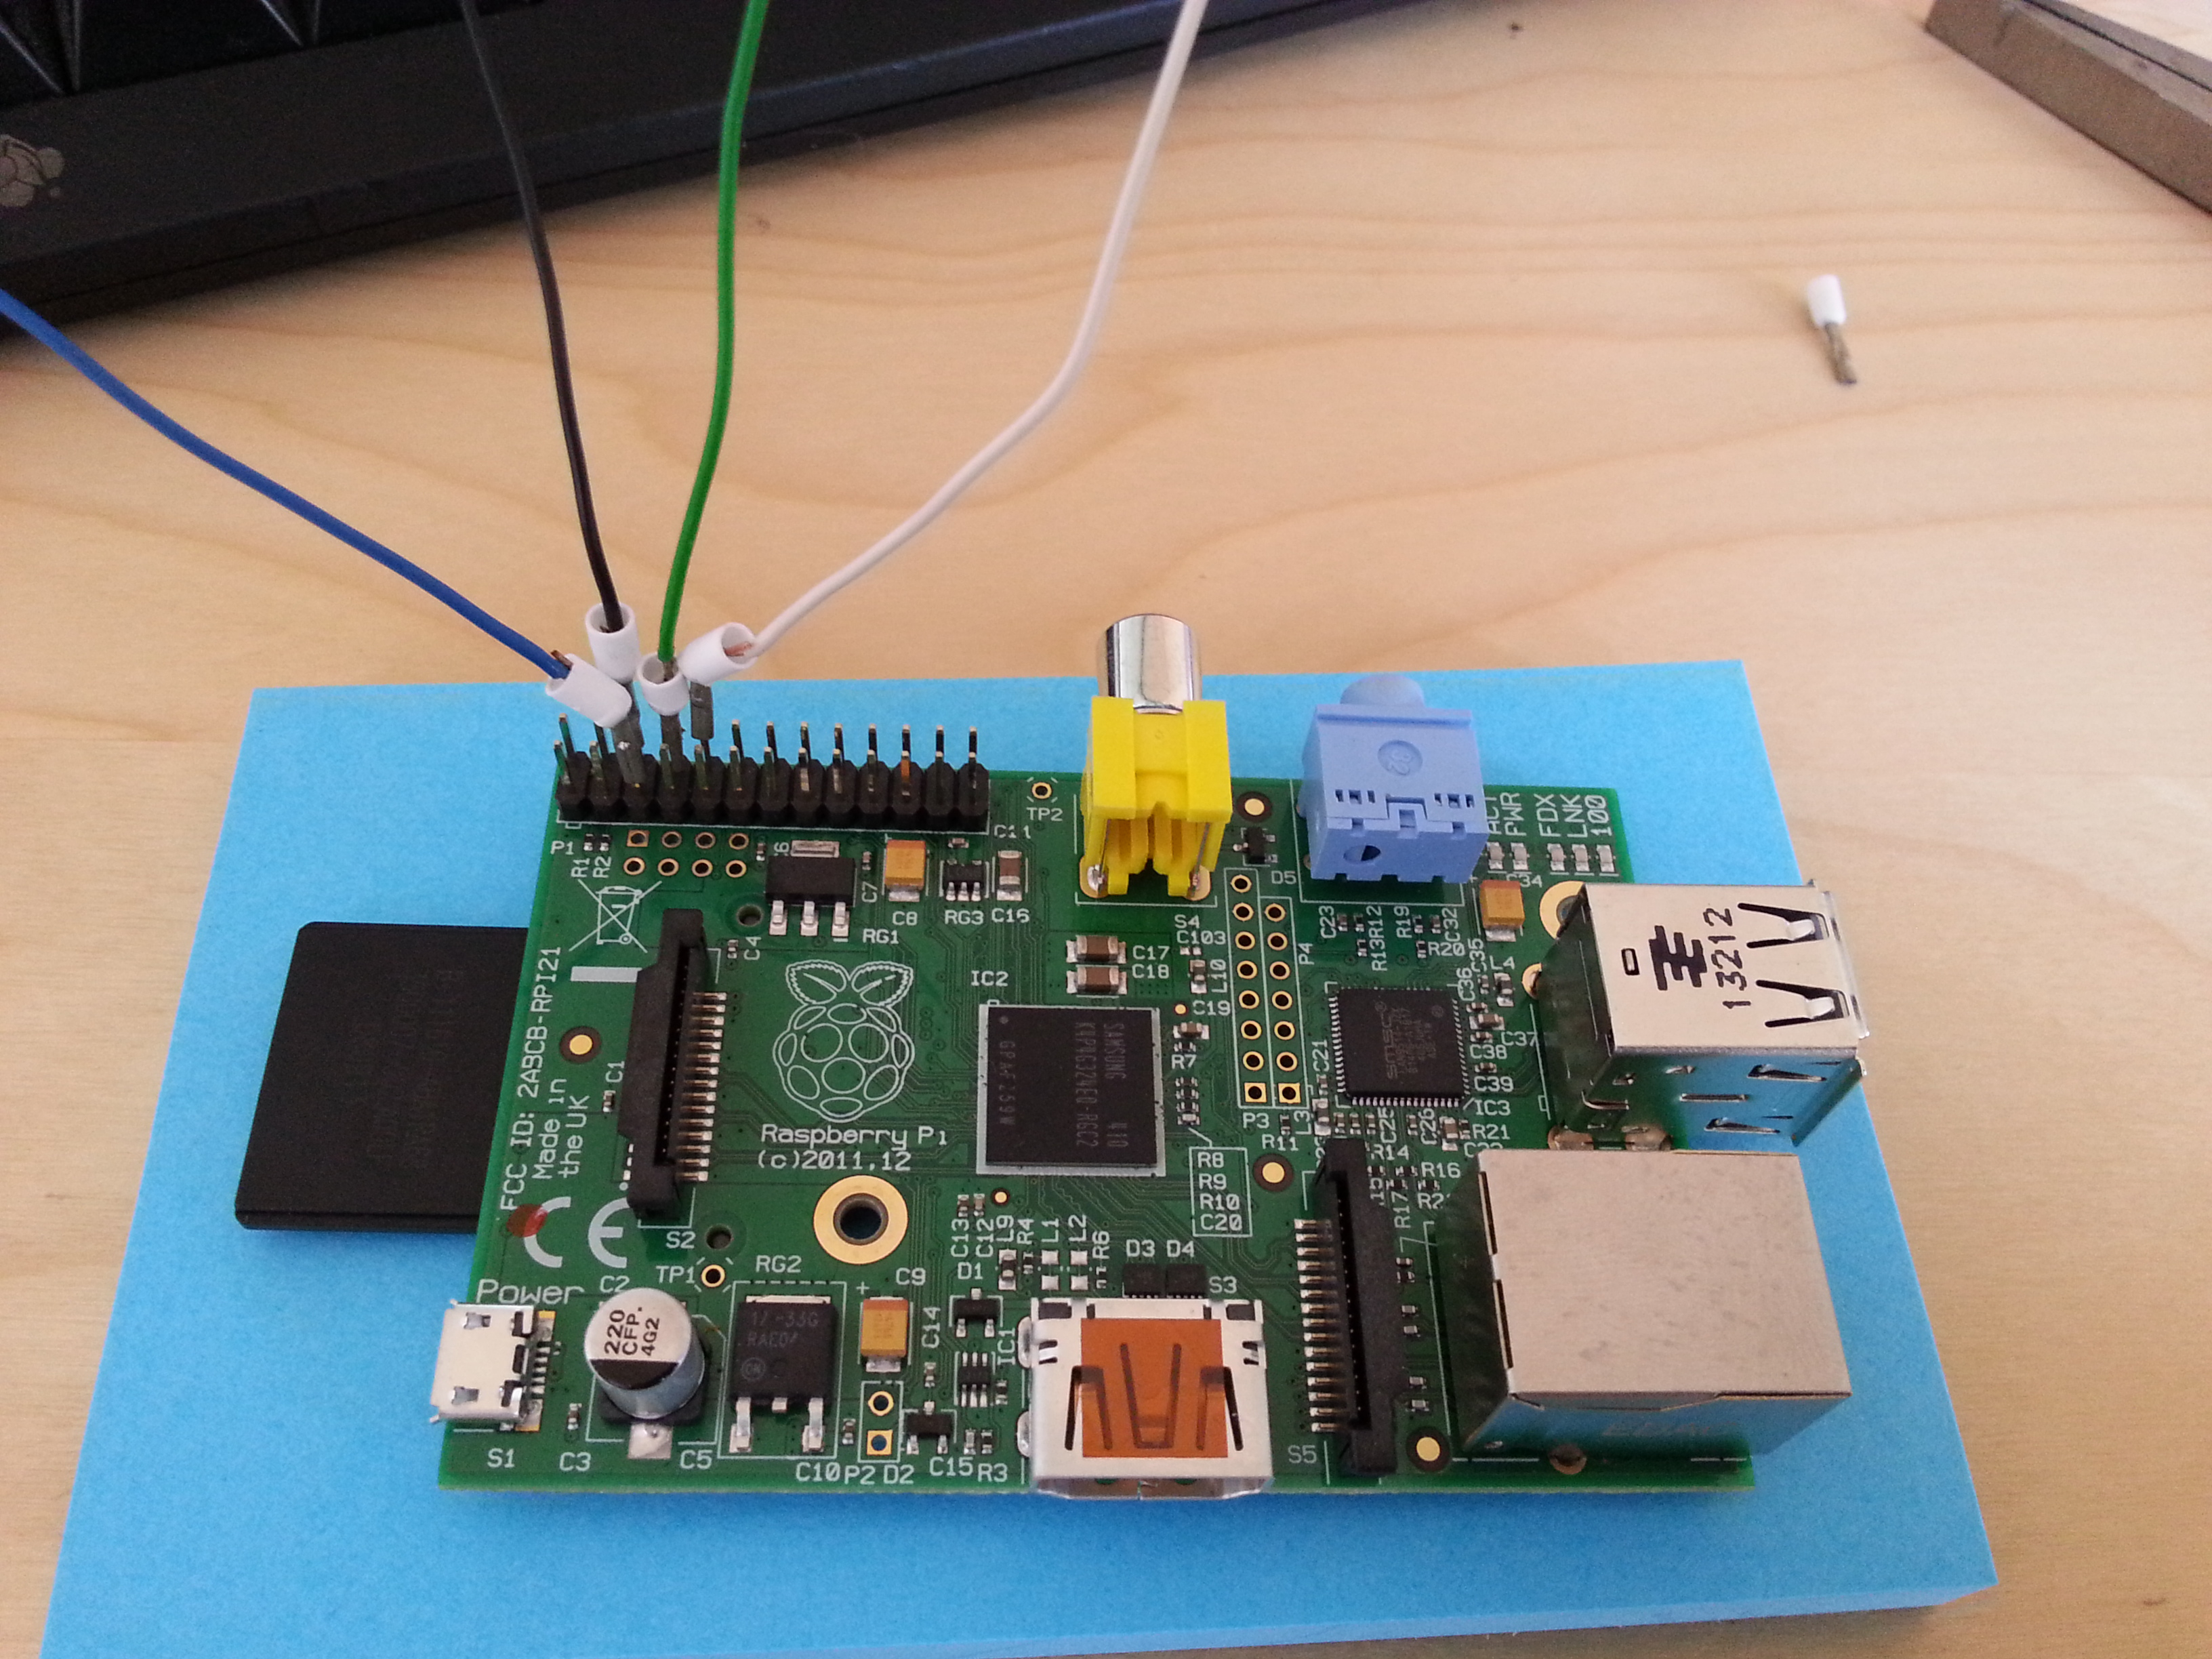 Raspberry Pi with wires connected to GPIO